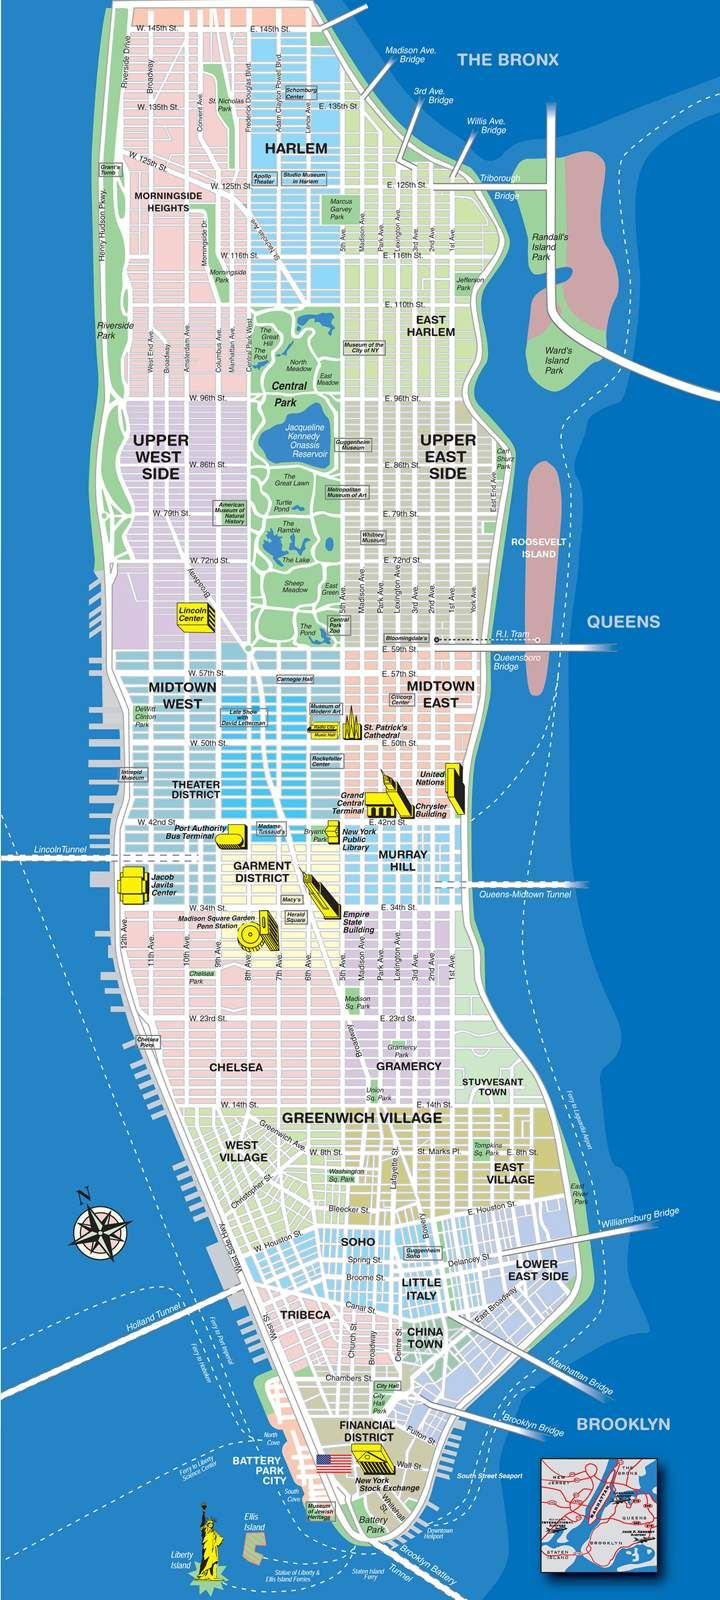 High resolution map of Manhattan for print or download | USA